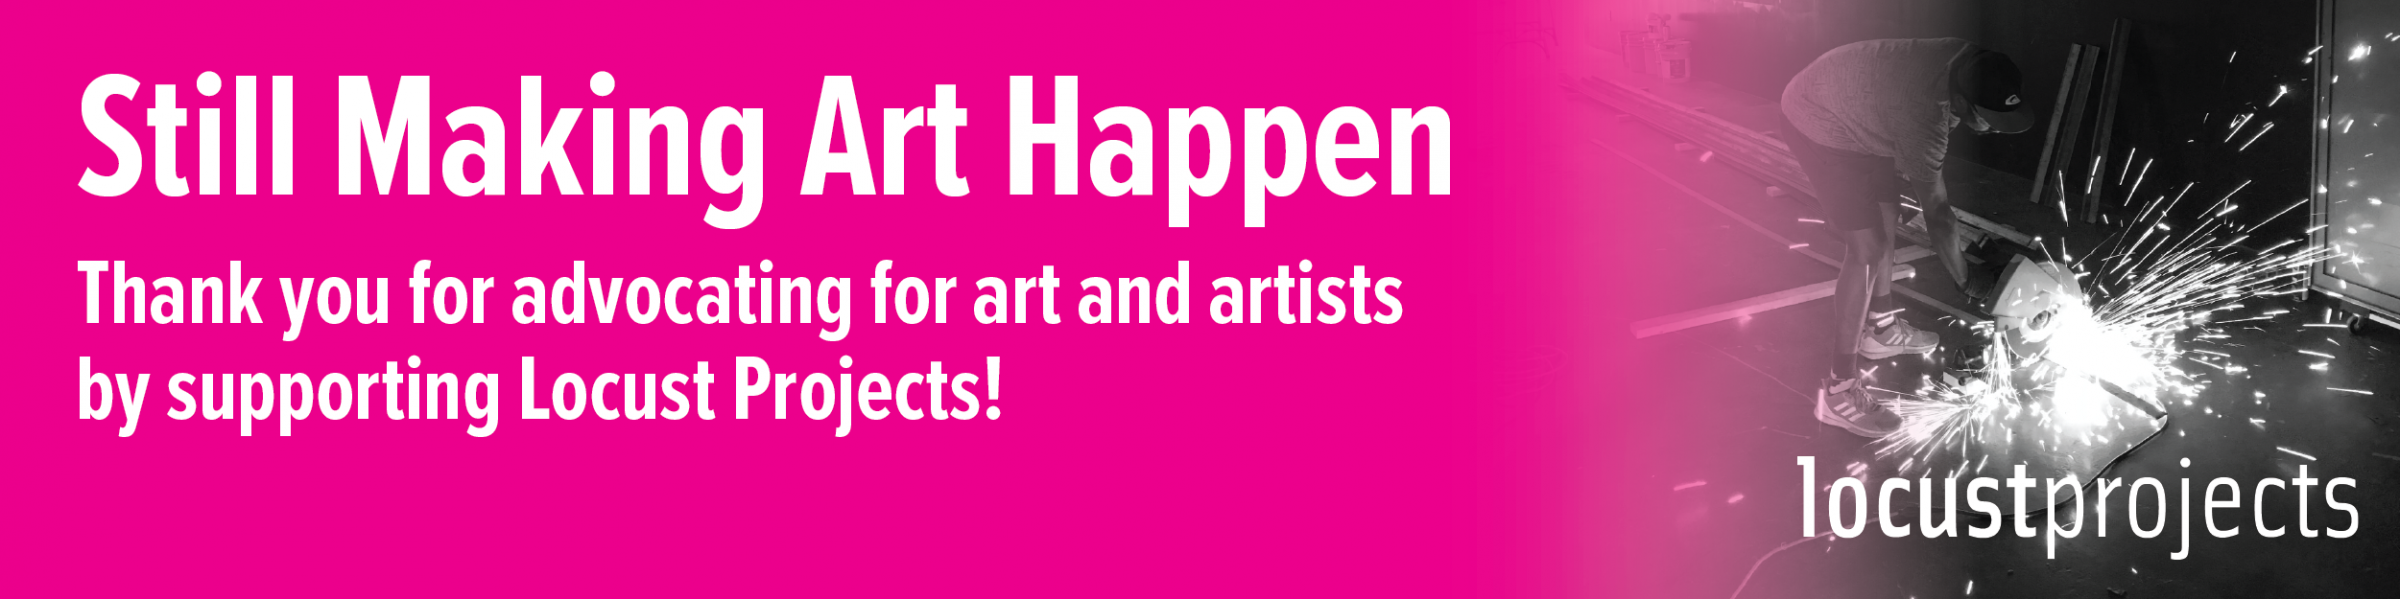 Still Making Art Happen: Action and Advocacy Campaign Spring 2020